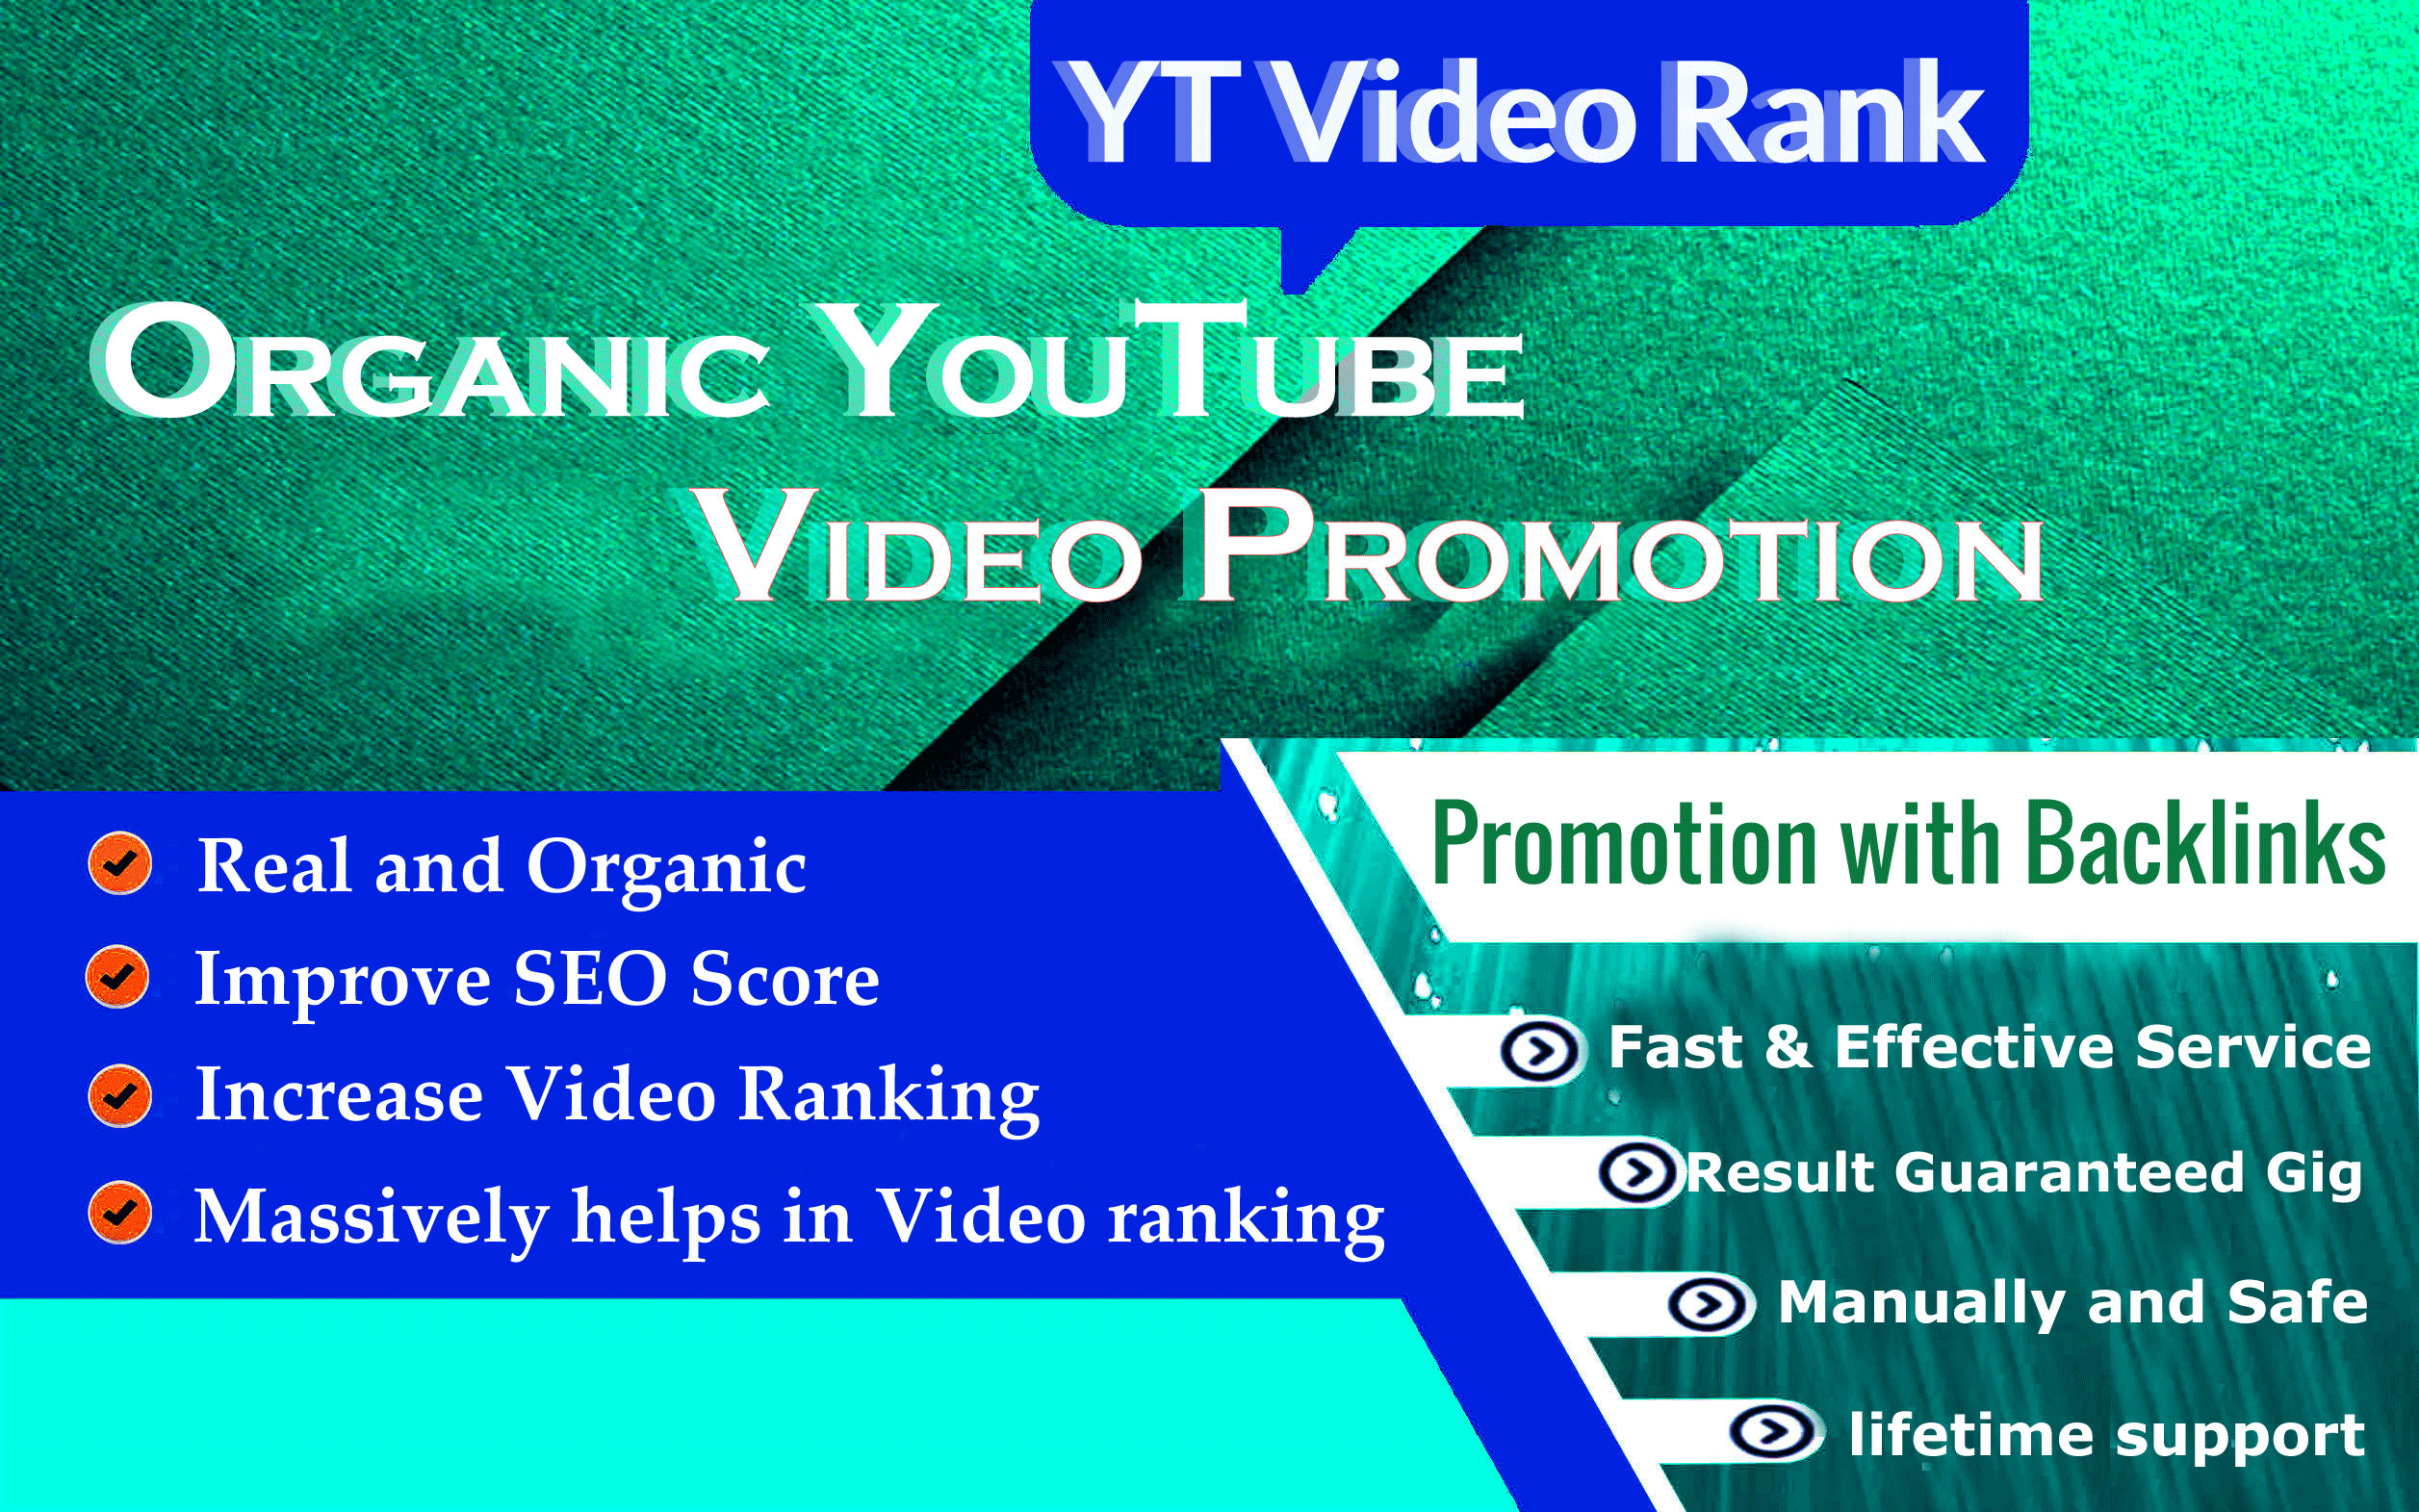 I will do organic youtube video promotion with backlinks and SEO